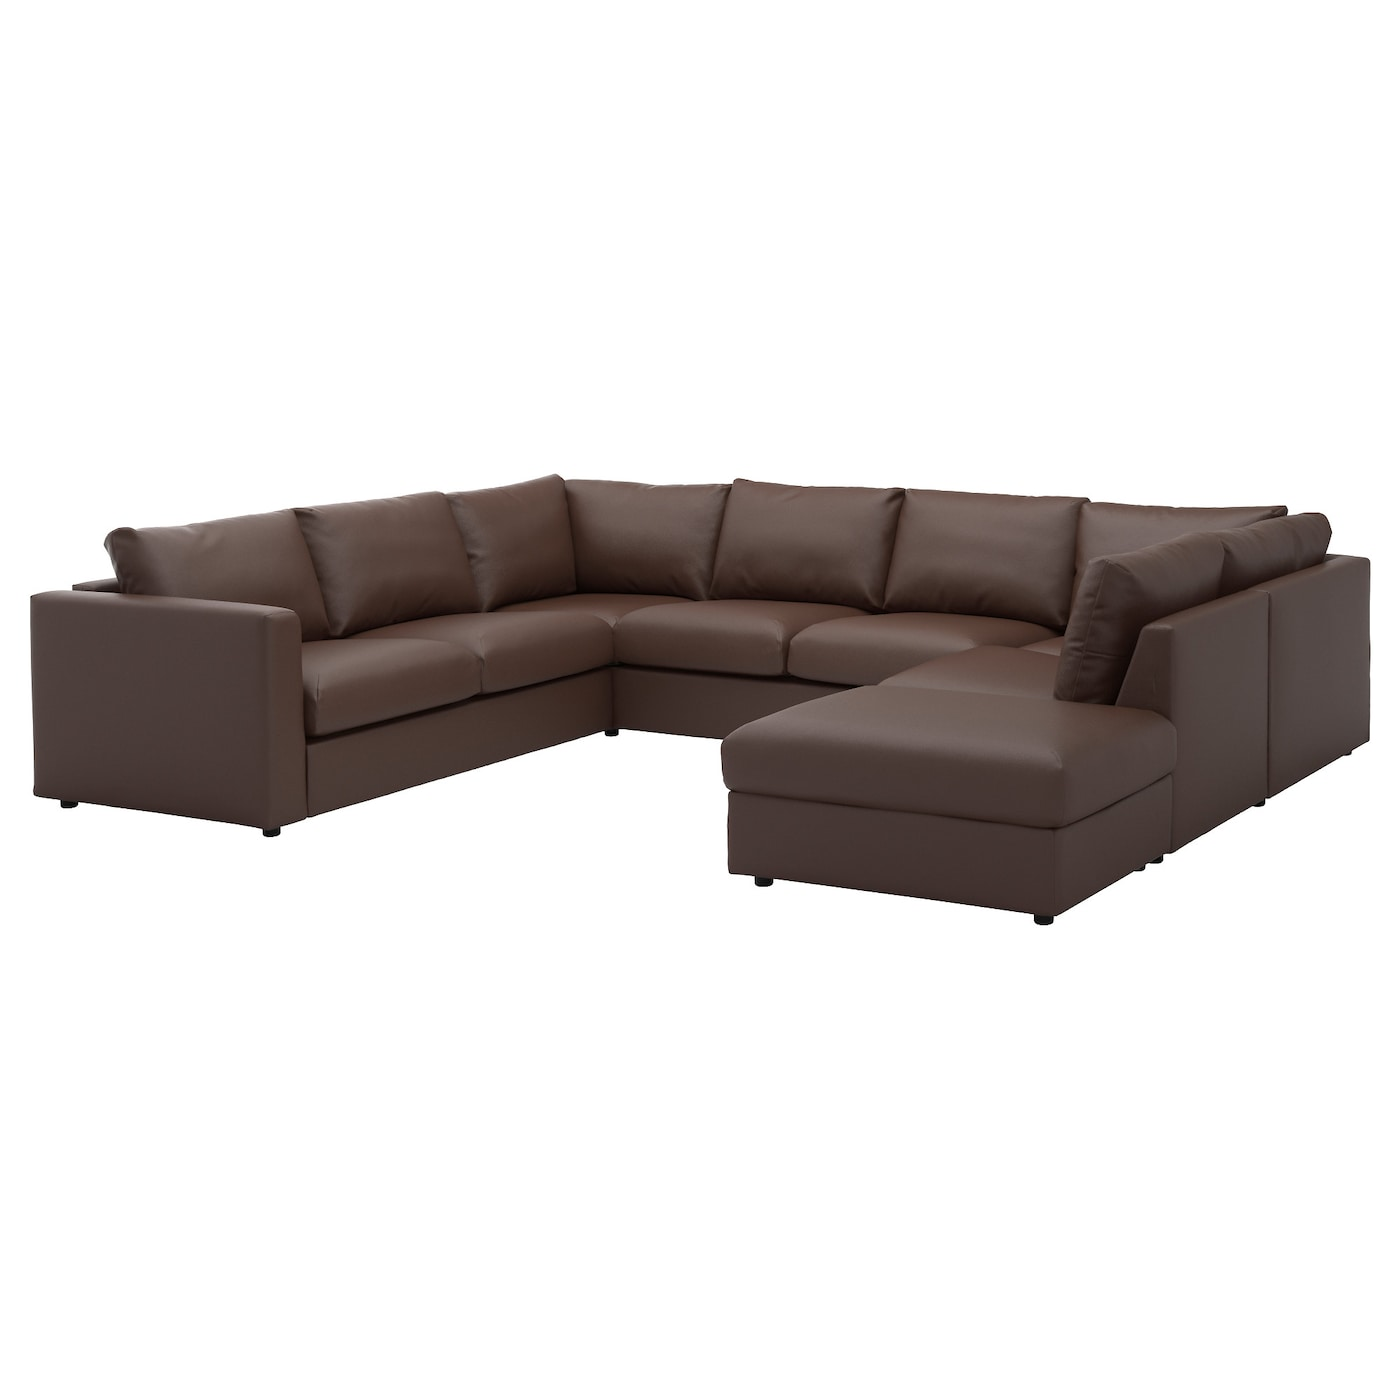 VIMLE Ushaped sofa 6 seat With open endfarsta dark brown IKEA